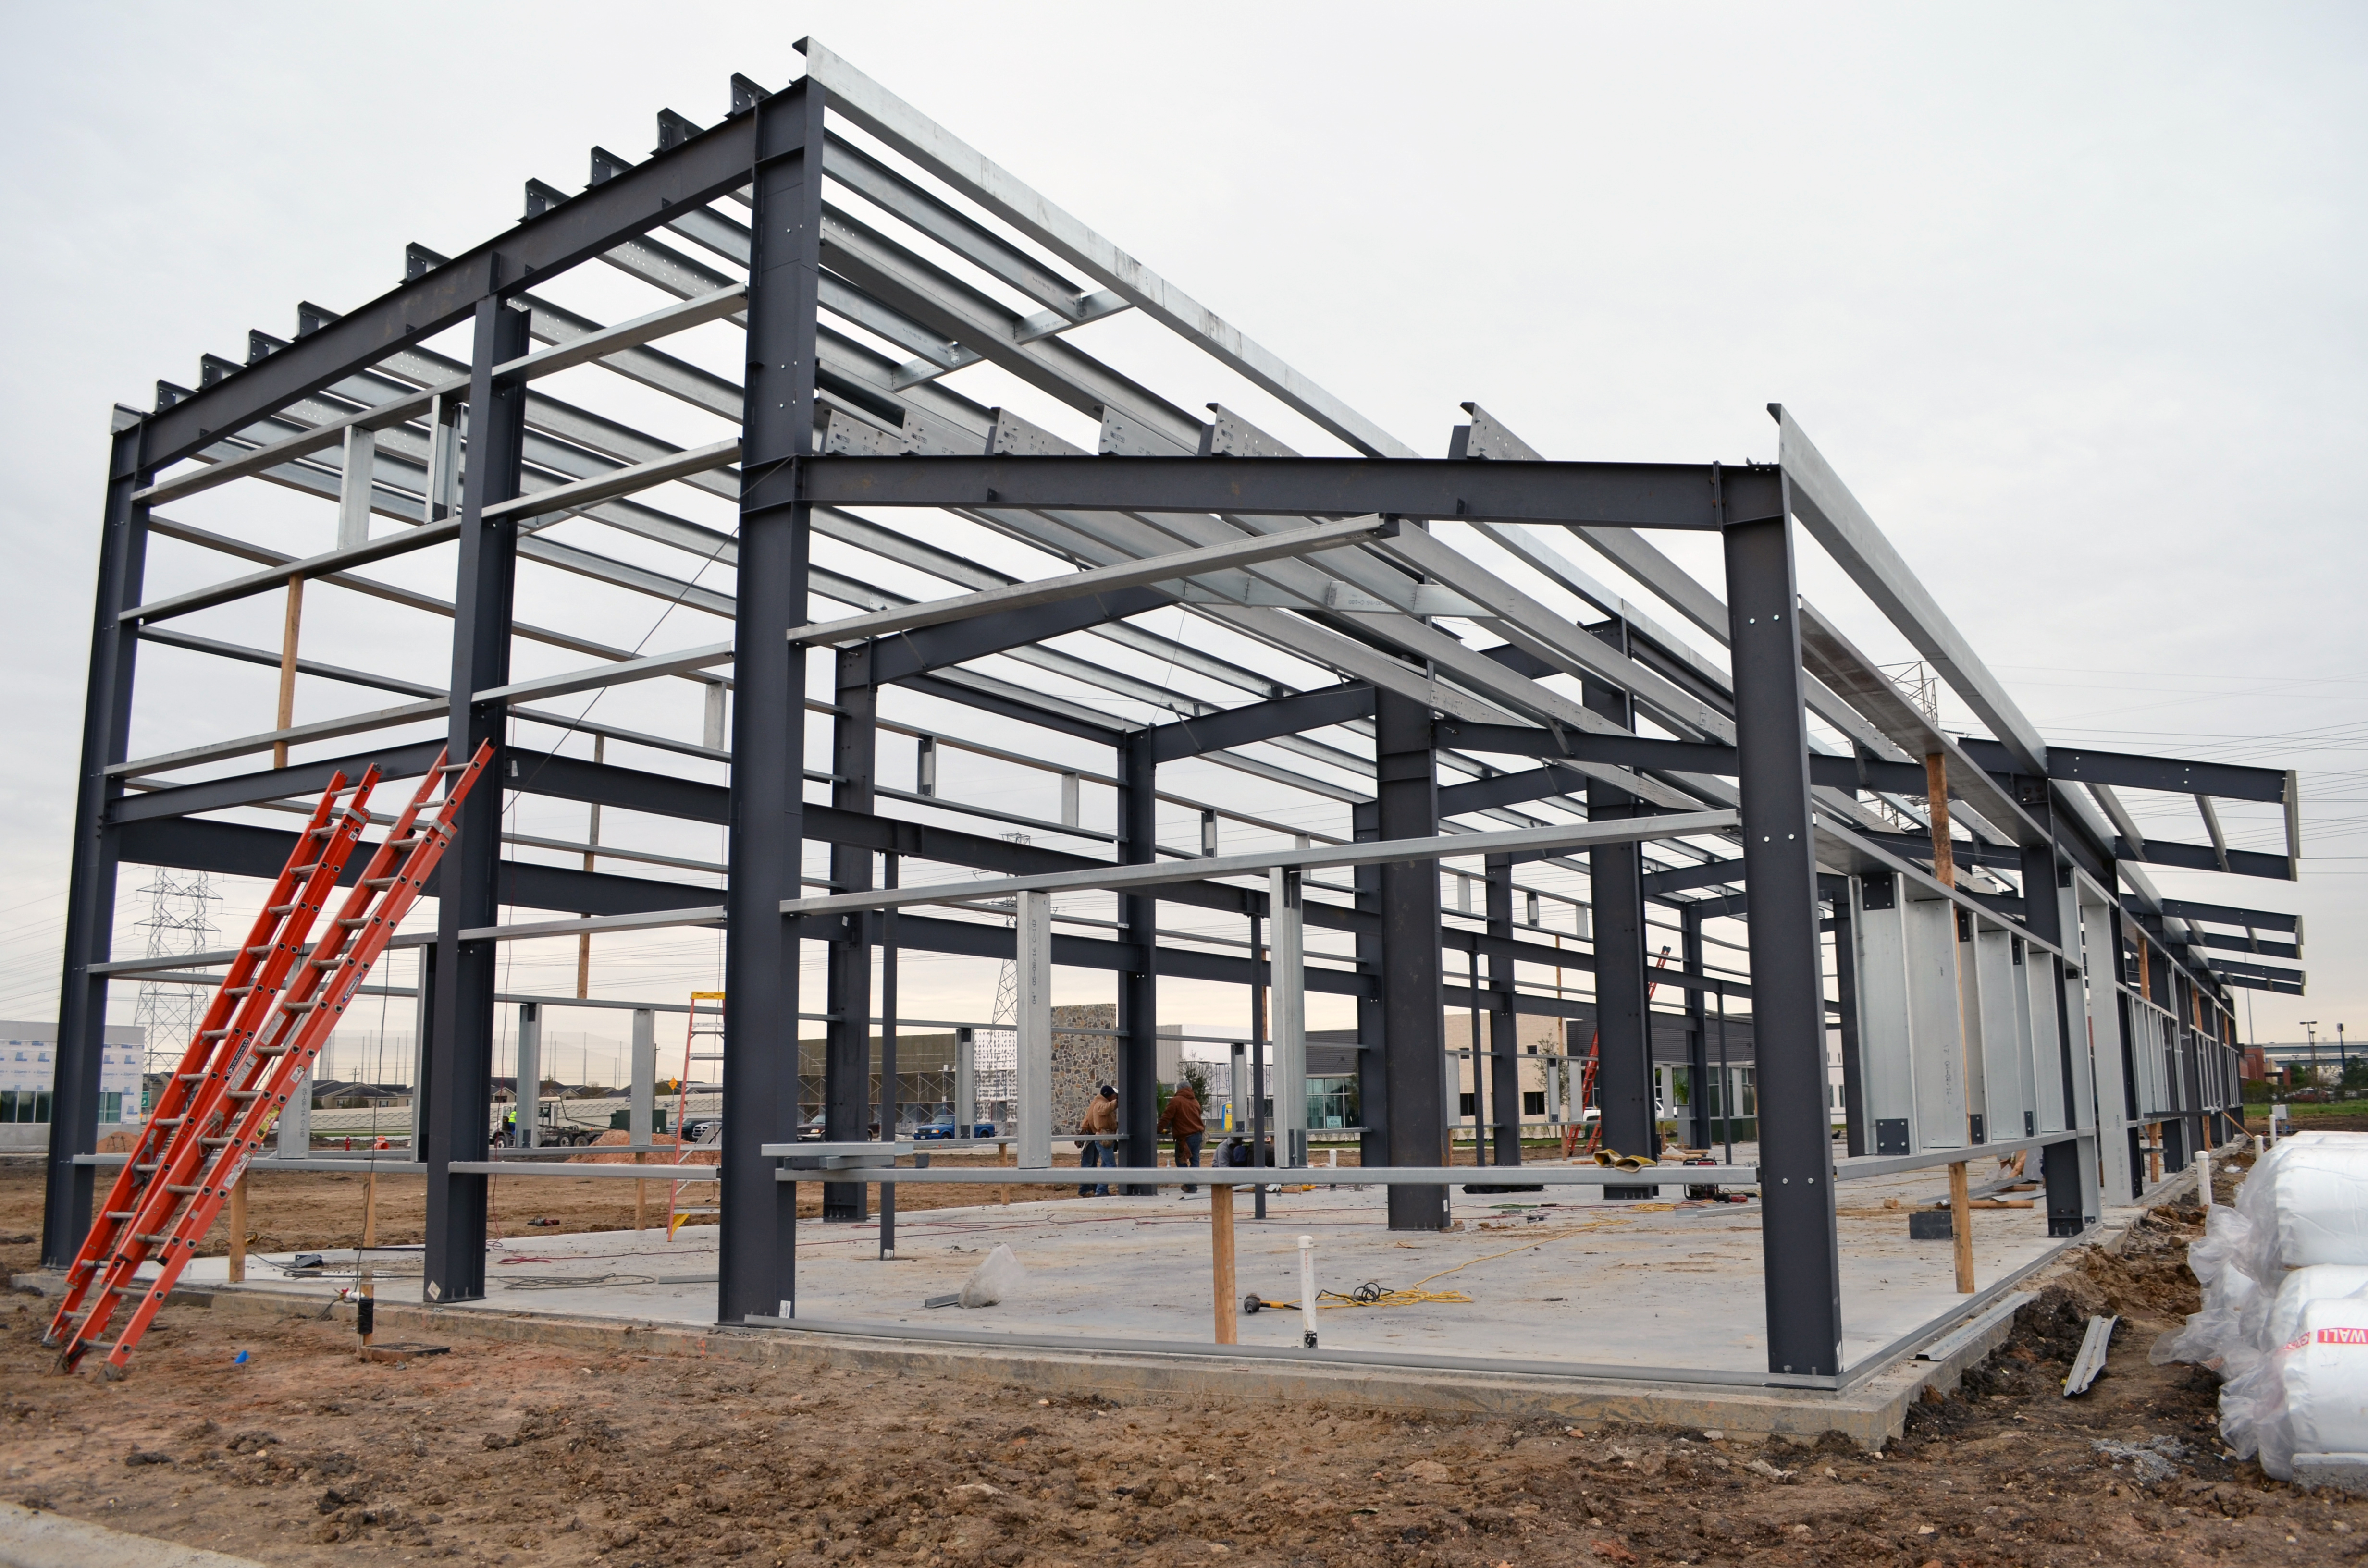 Structural Steel Framing : The foundation is poured and steel structure up